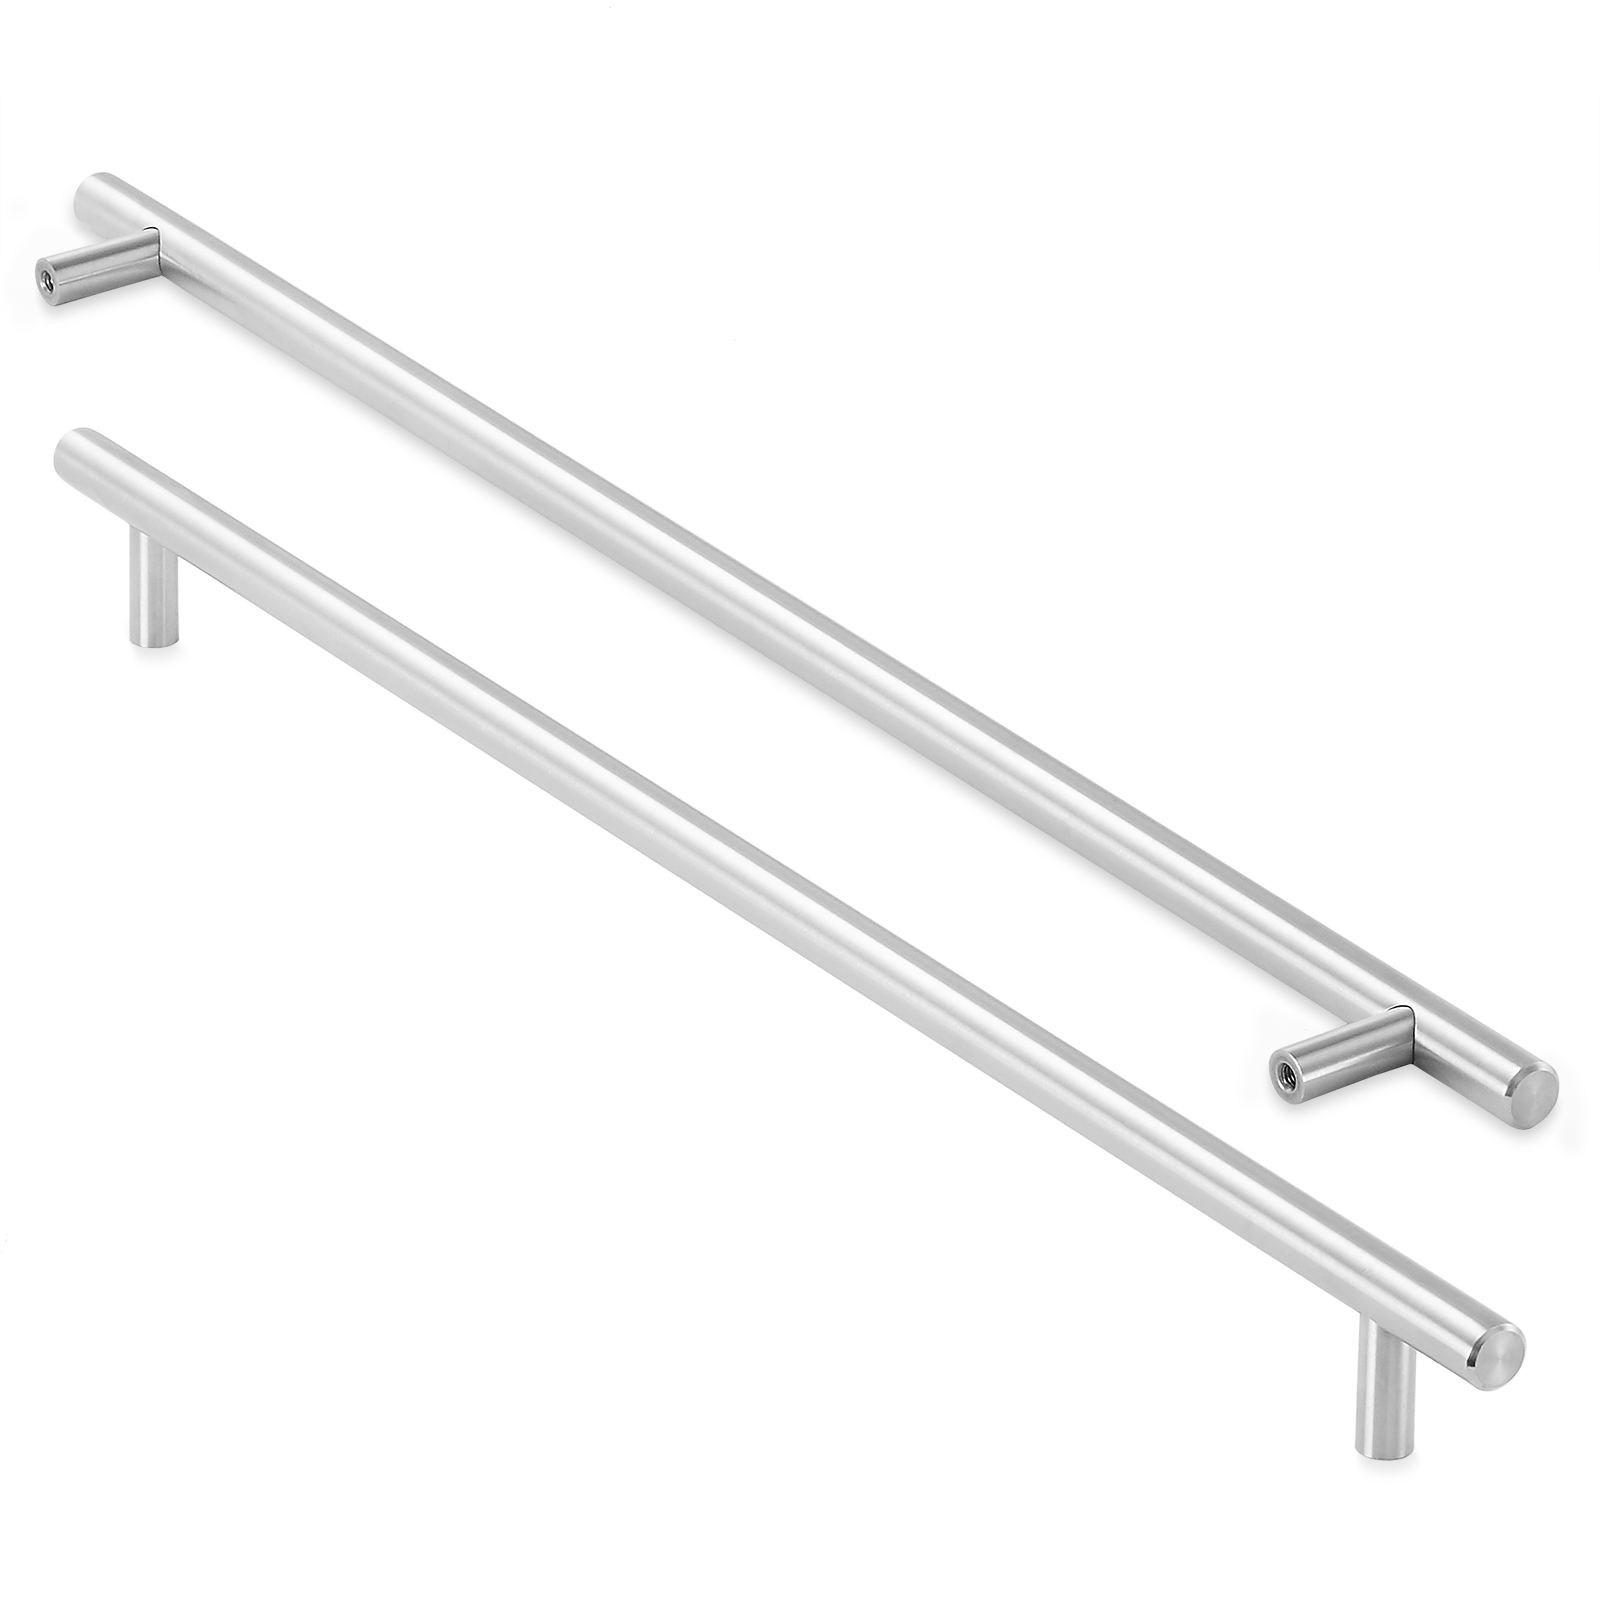 Solid Stainless Steel Kitchen Cabinet Hardware Handle Pull ...